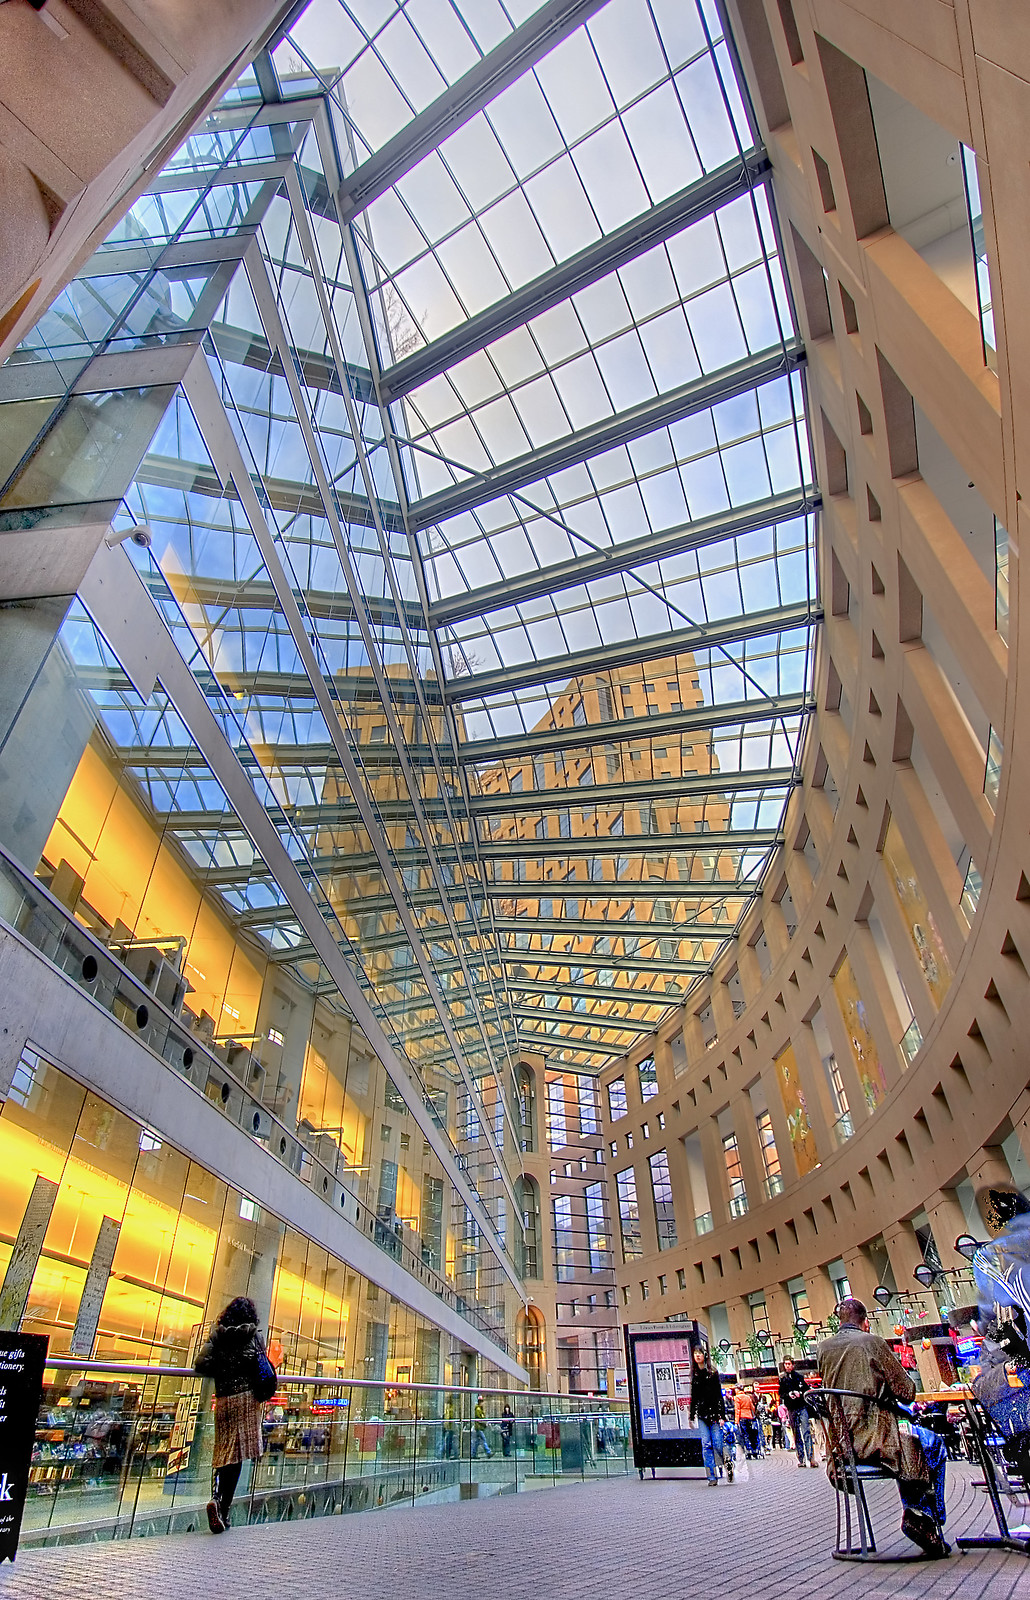 Vancouver Public Library's central branch, Vancouver, Canada. Image credit Darren Stone.